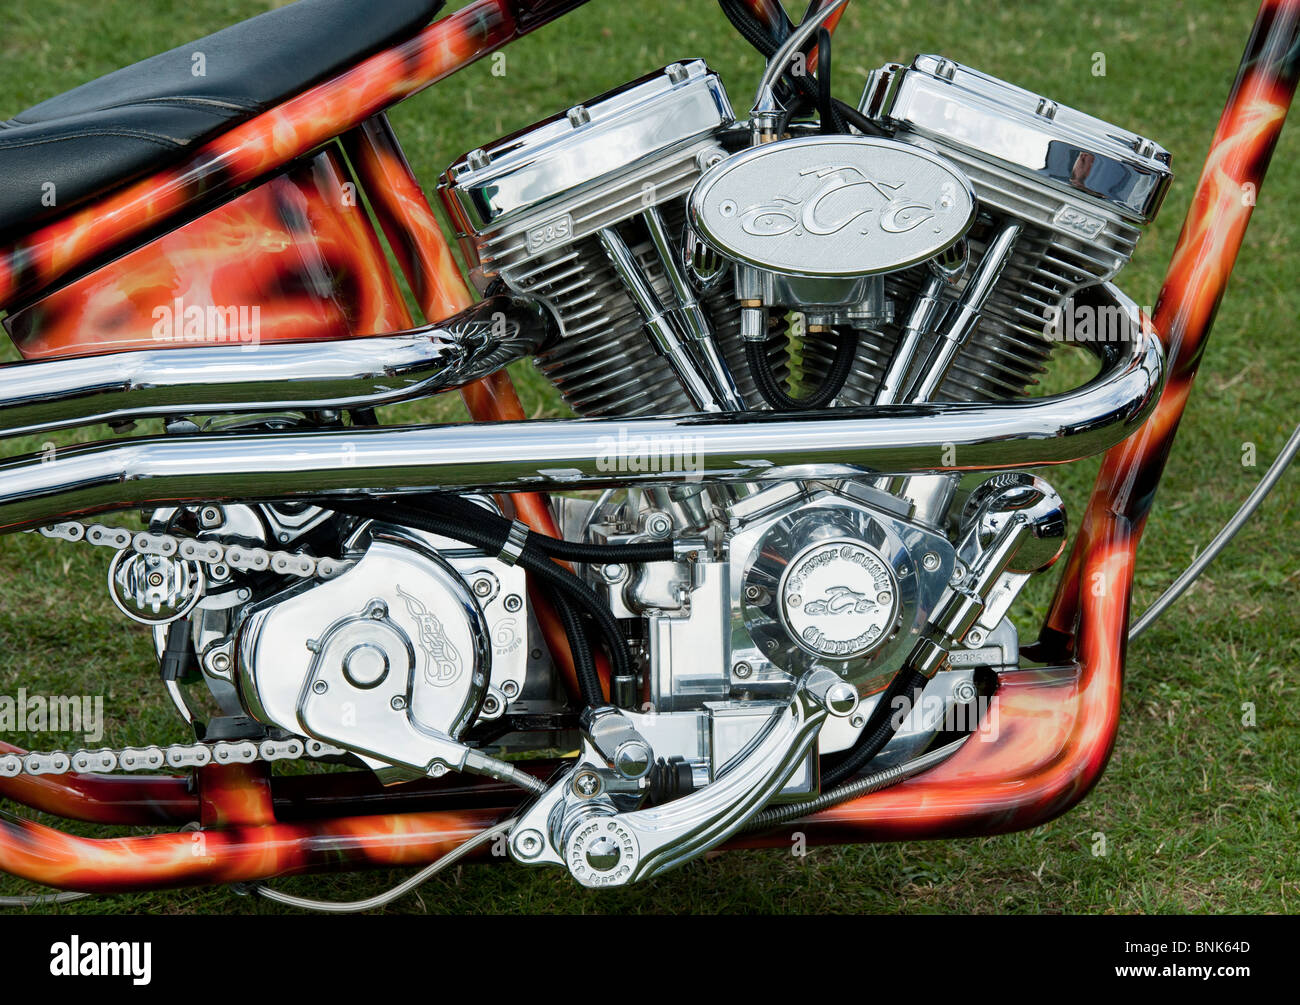 custom chopper harley davidson motorcycle with a v twin panhead stock photo  royalty free image